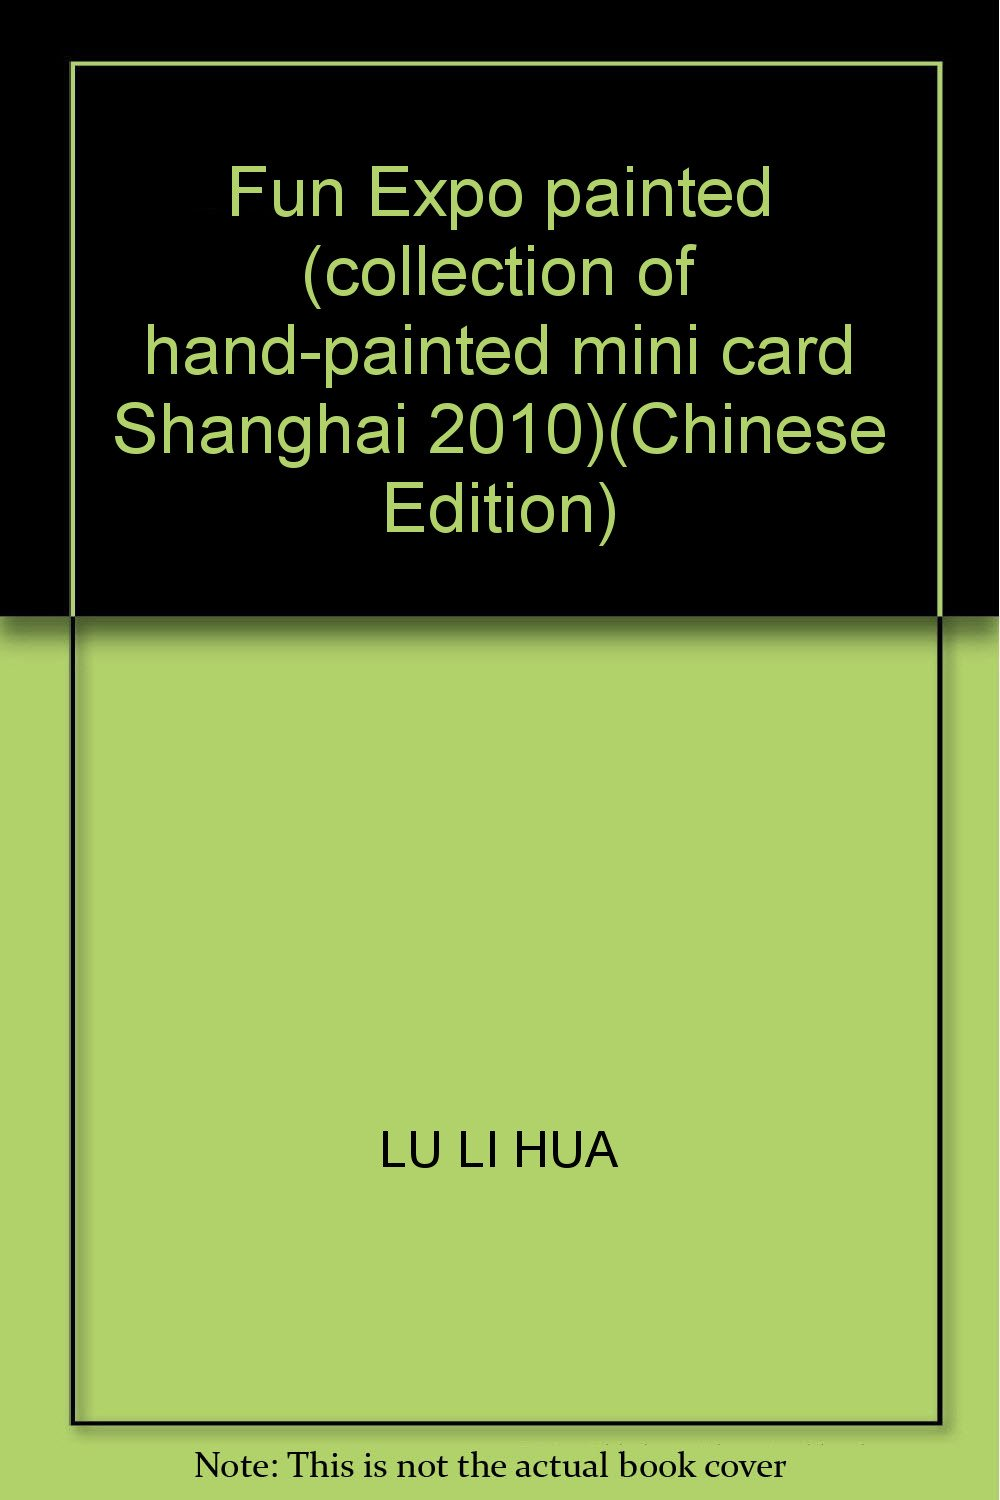 Download Fun Expo painted (collection of hand-painted mini card Shanghai 2010)(Chinese Edition) PDF